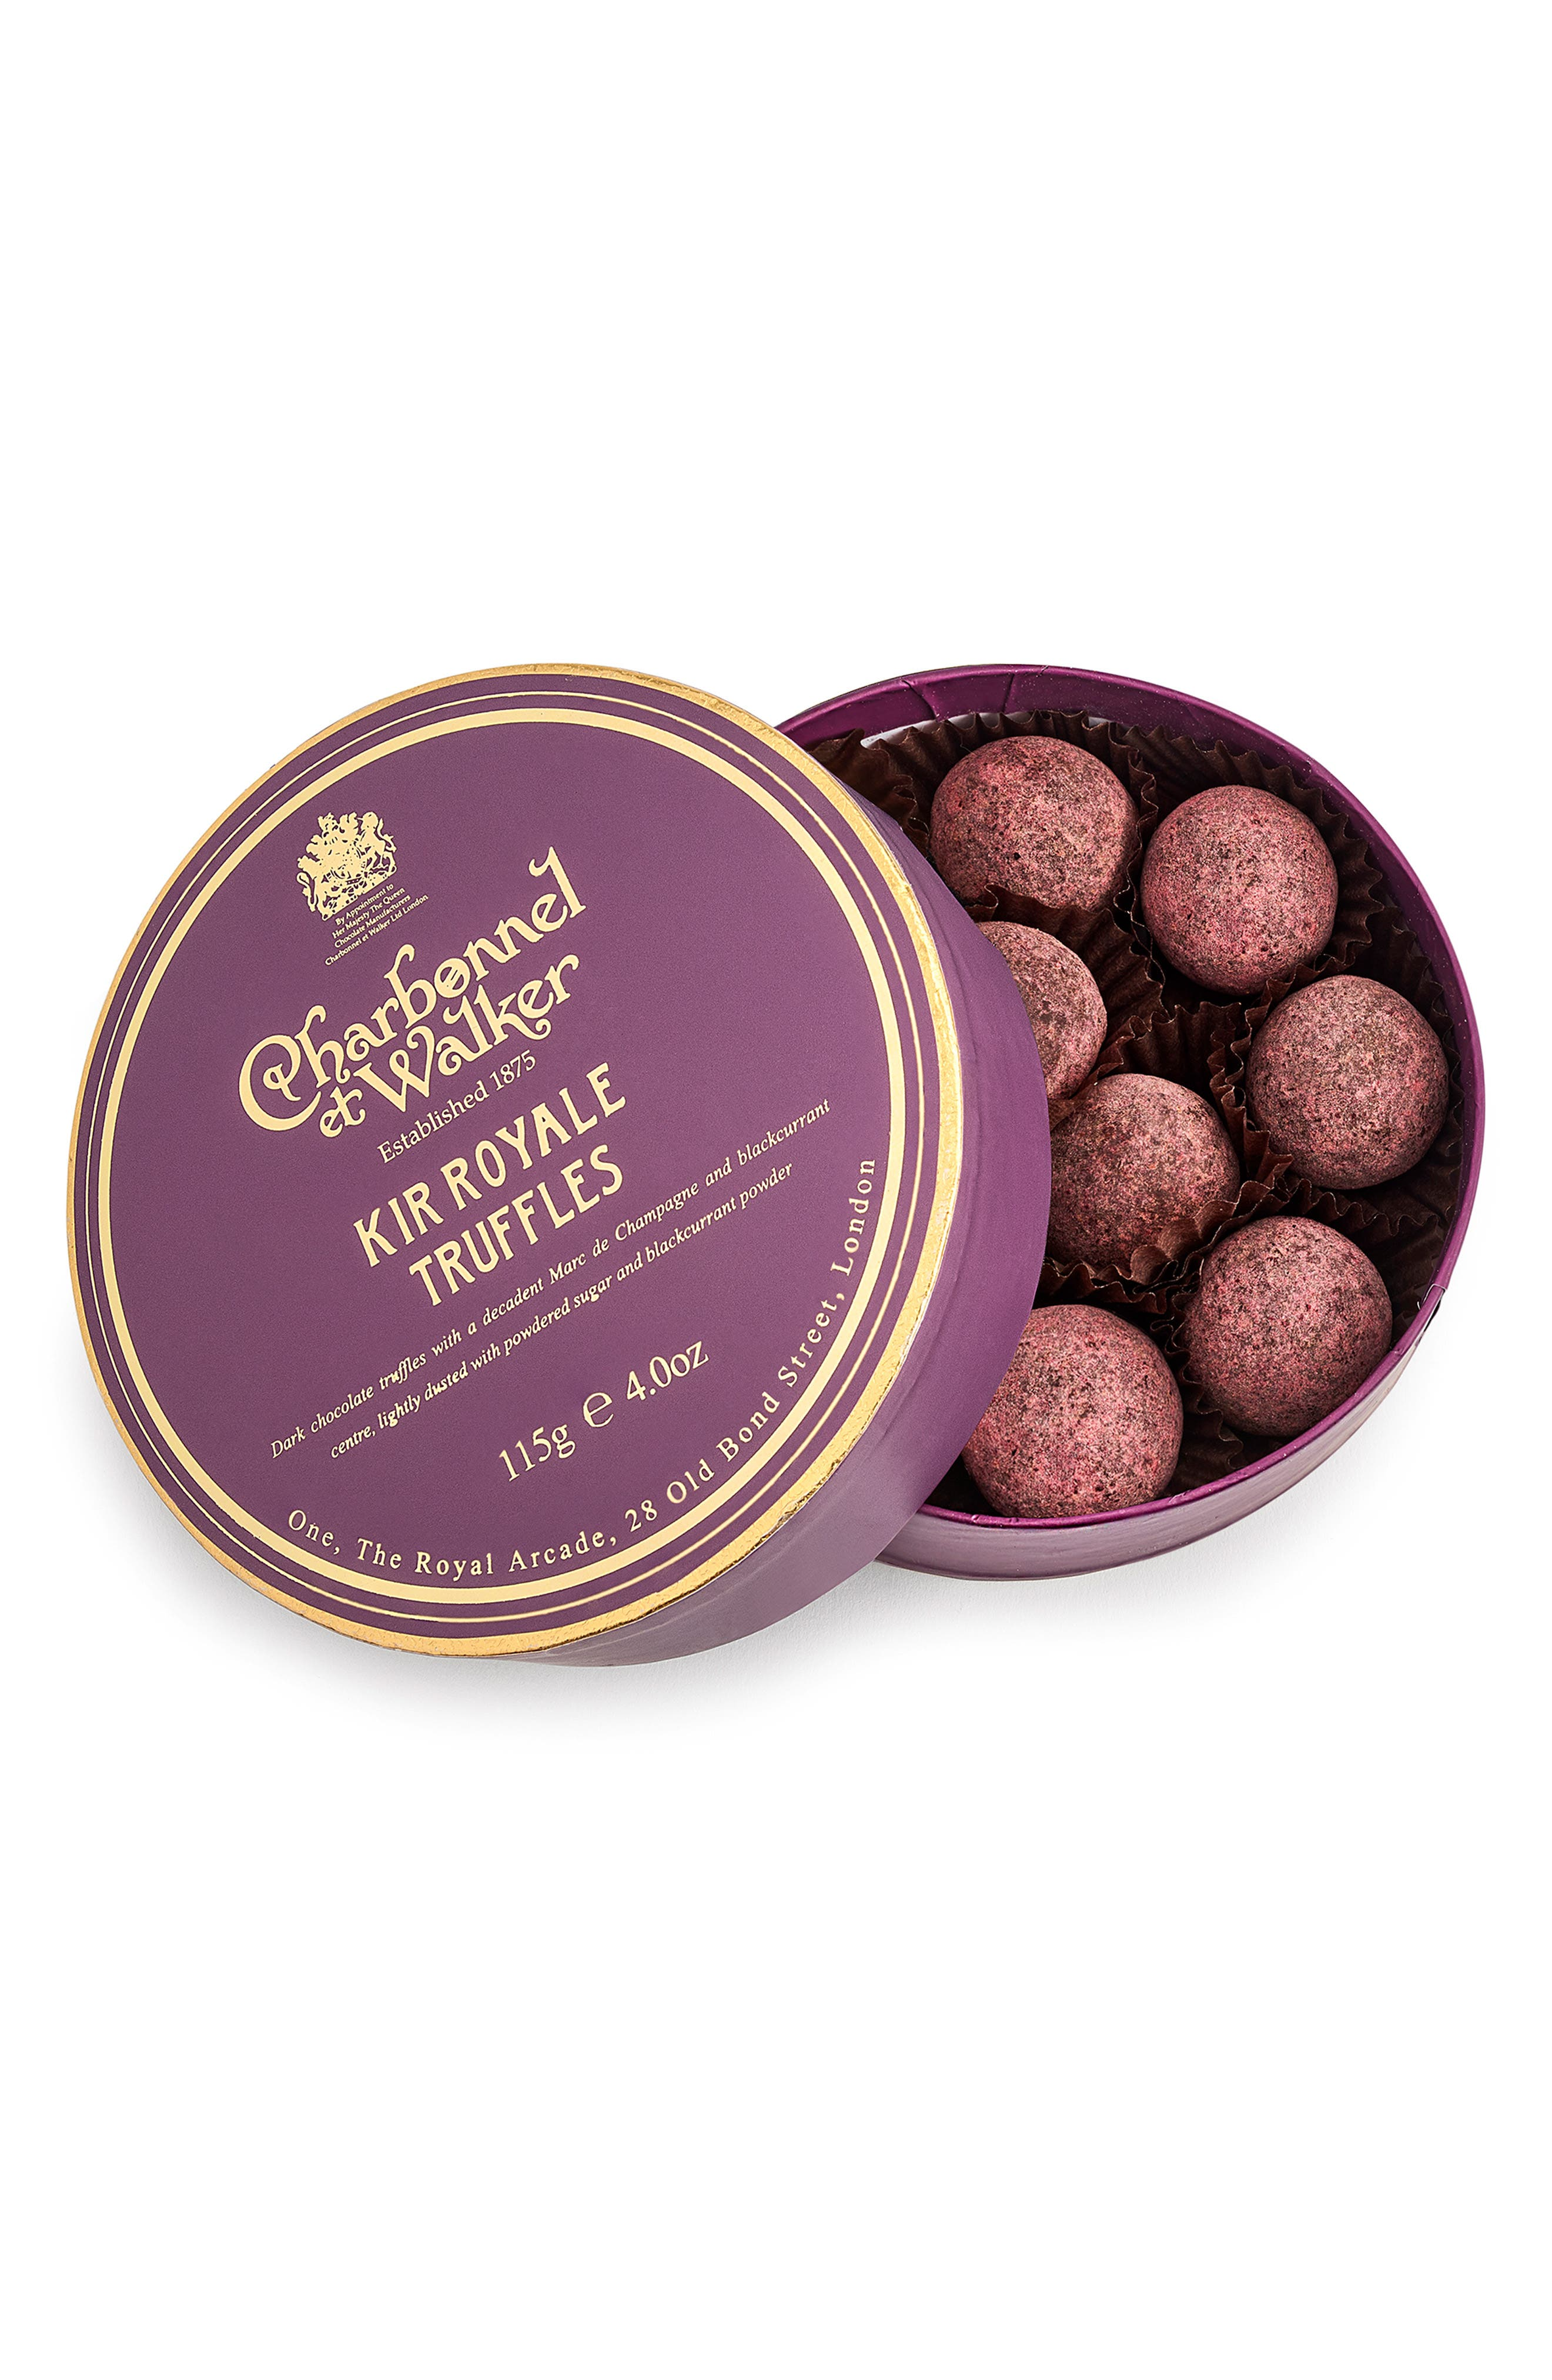 Flavored Chocolate Truffles in Gift Box,                             Main thumbnail 1, color,                             KIR ROYALE